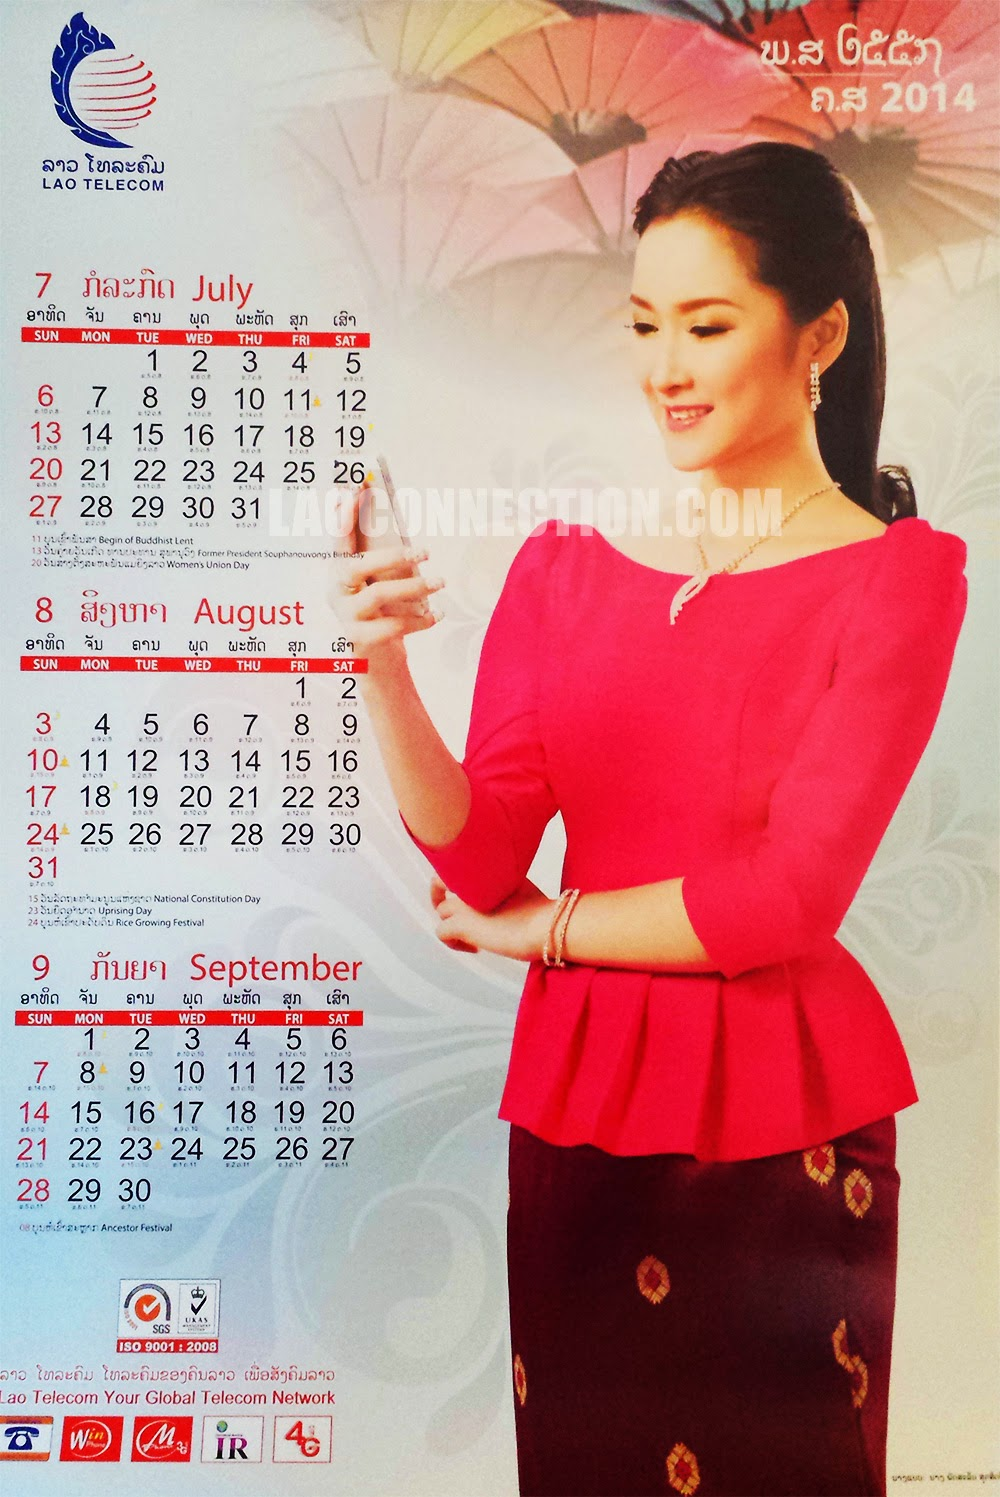 Lao Telecom Calendar 2014 - Miss July/August/September